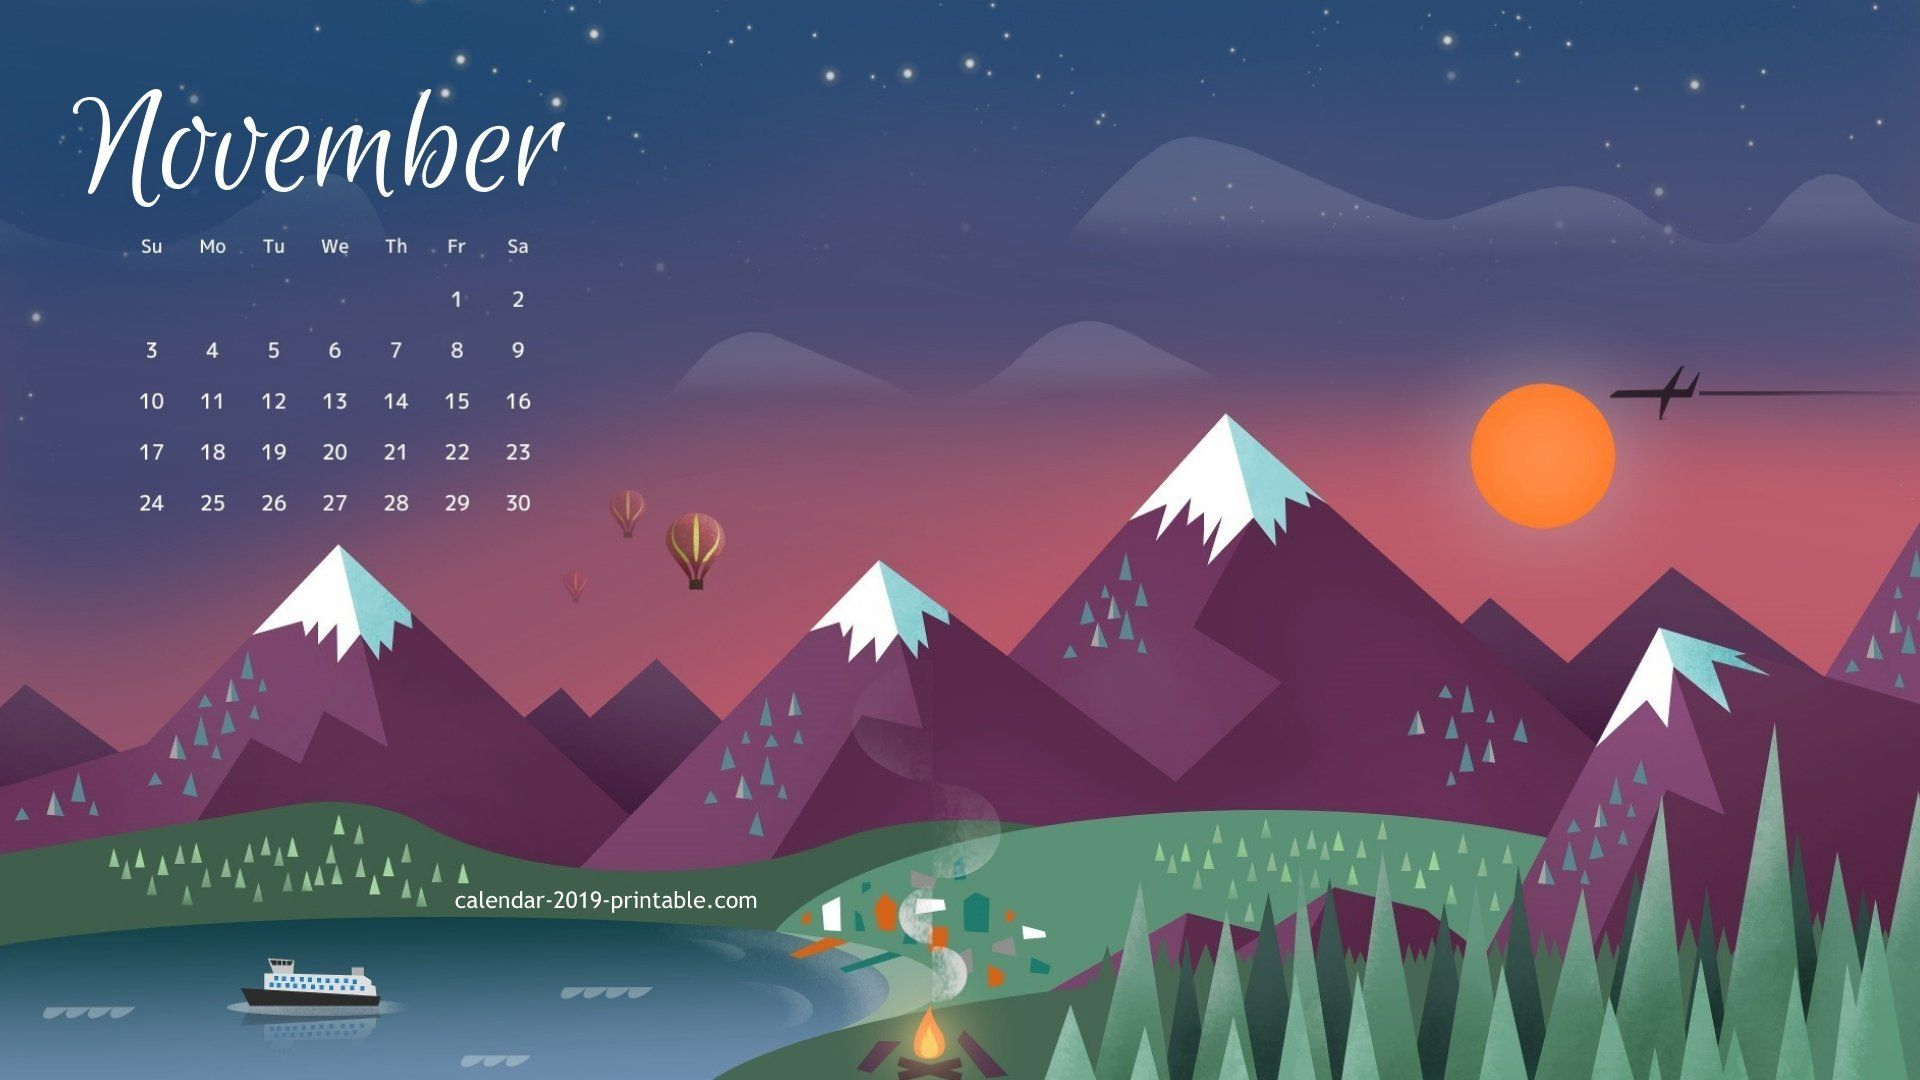 Desktop Calendar Wallpaper November 2019